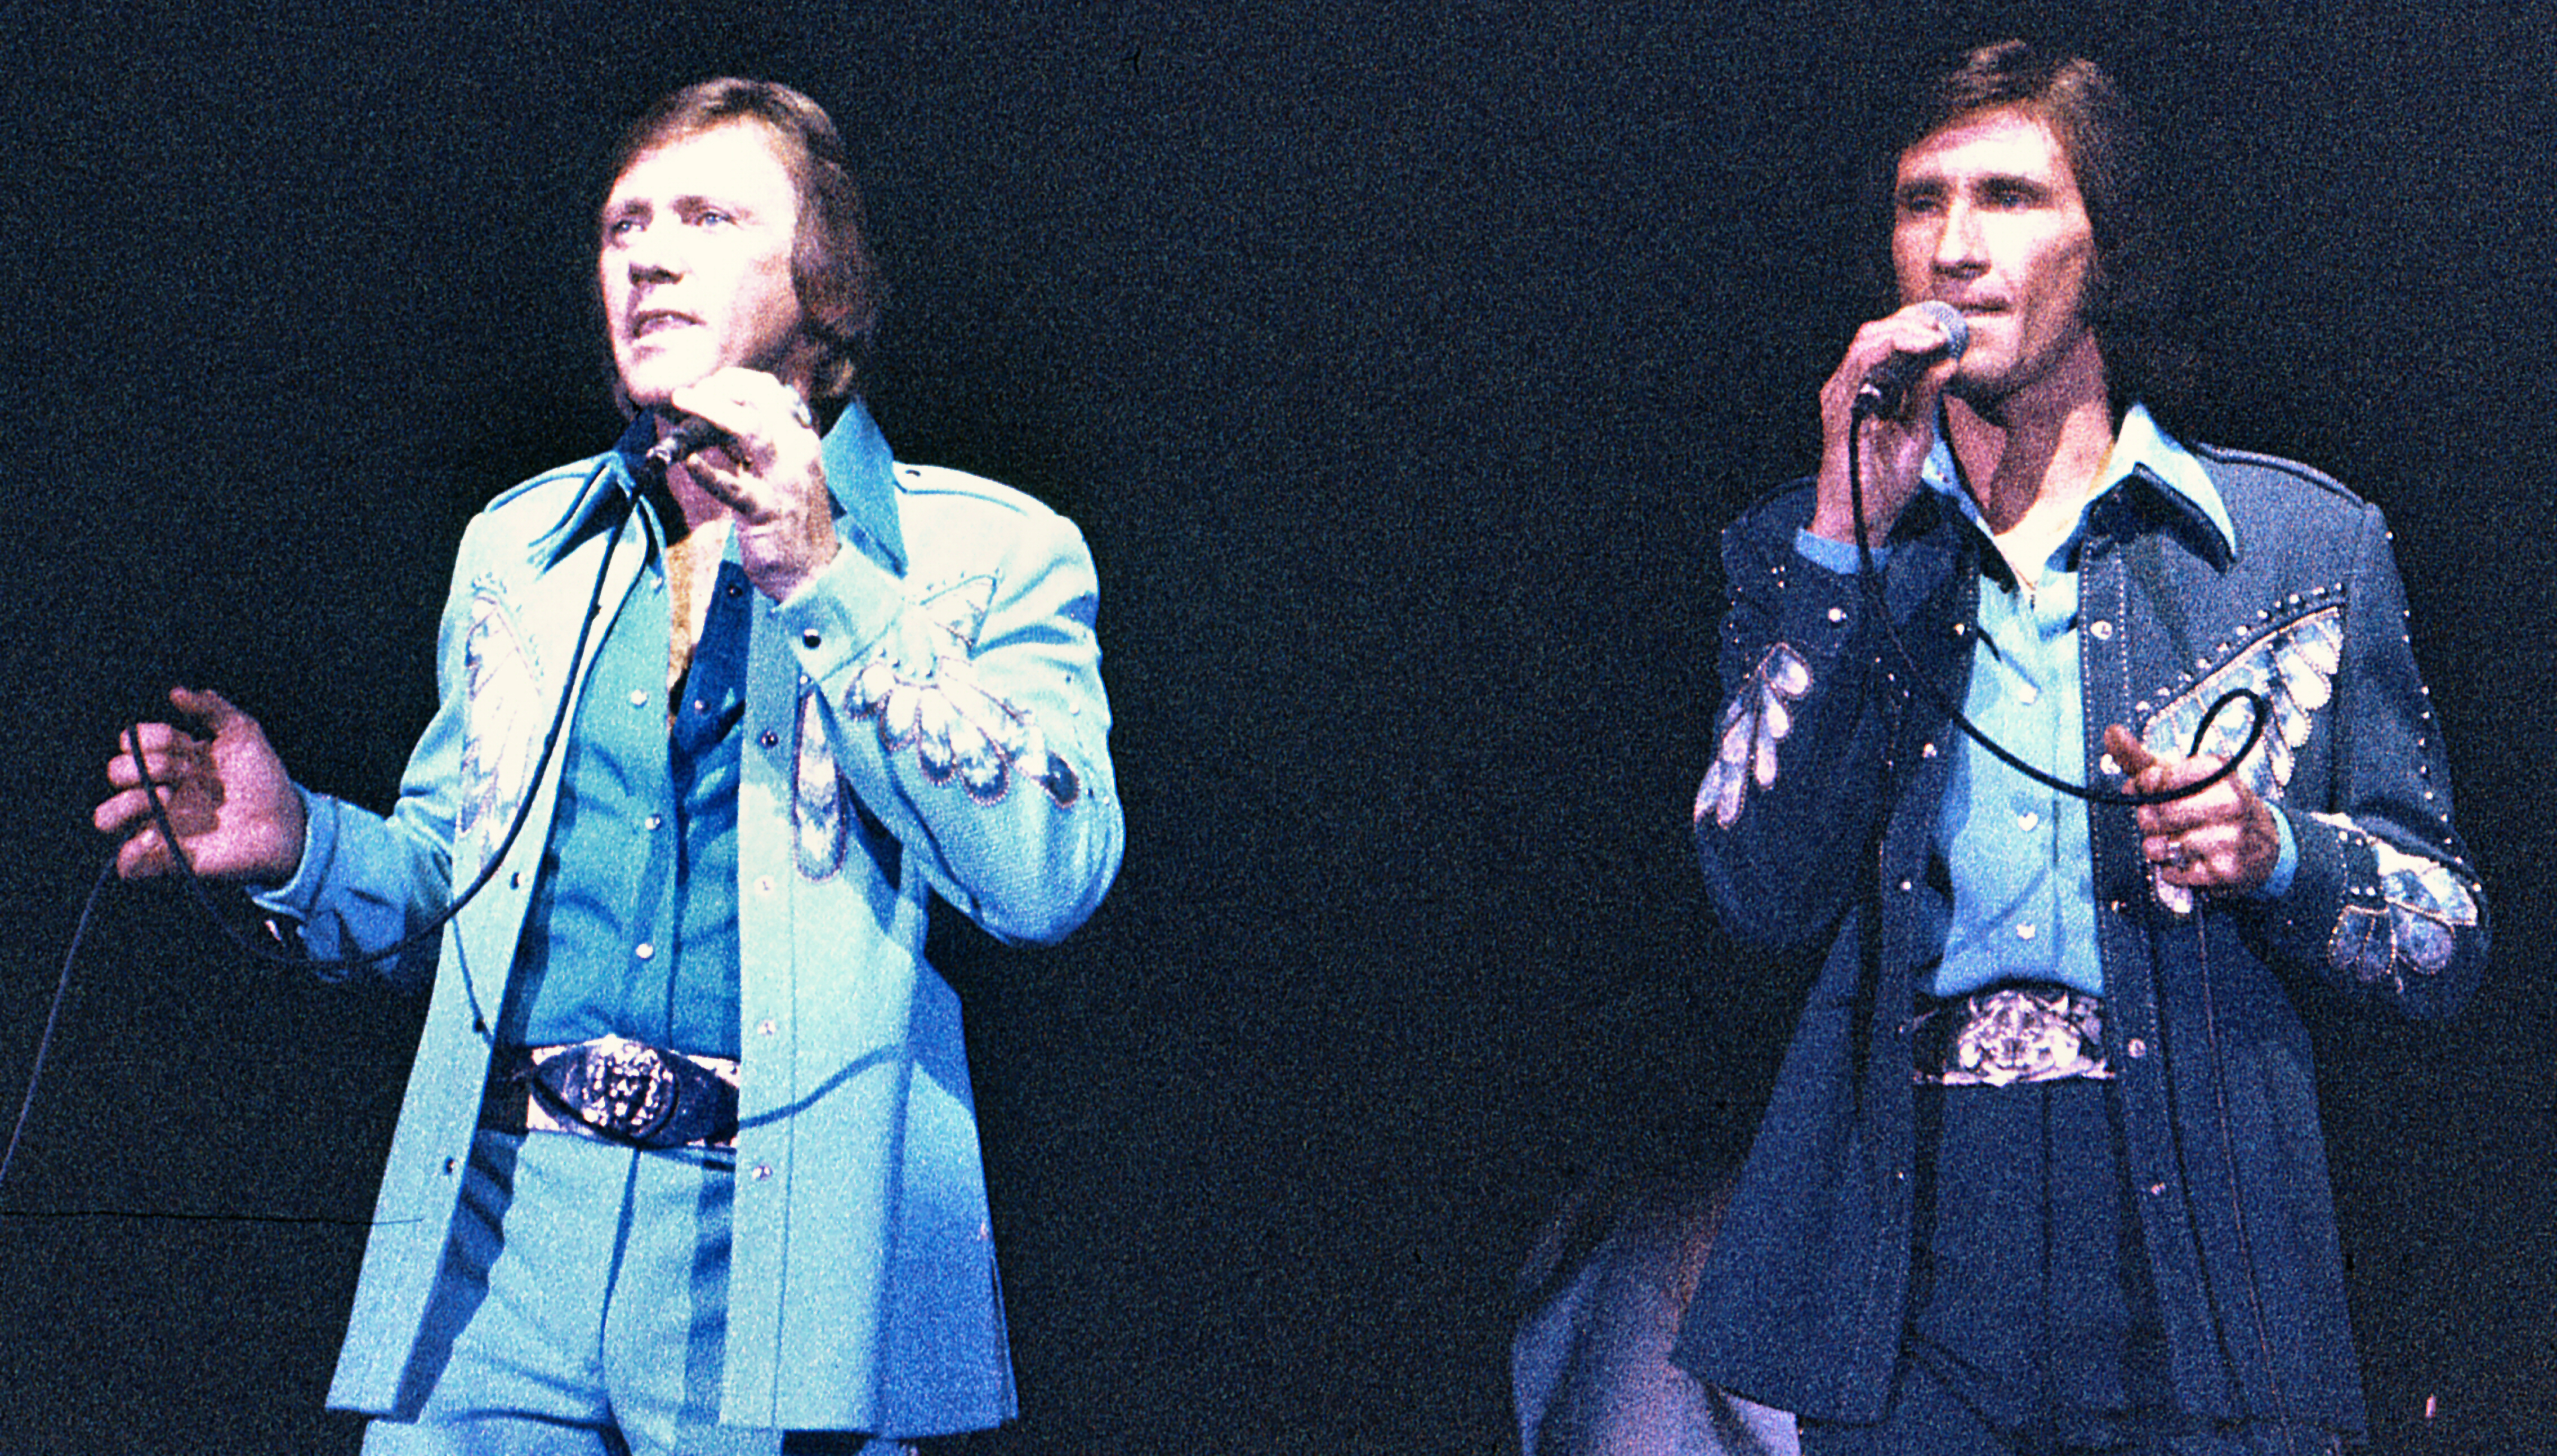 The Righteous Brothers - I